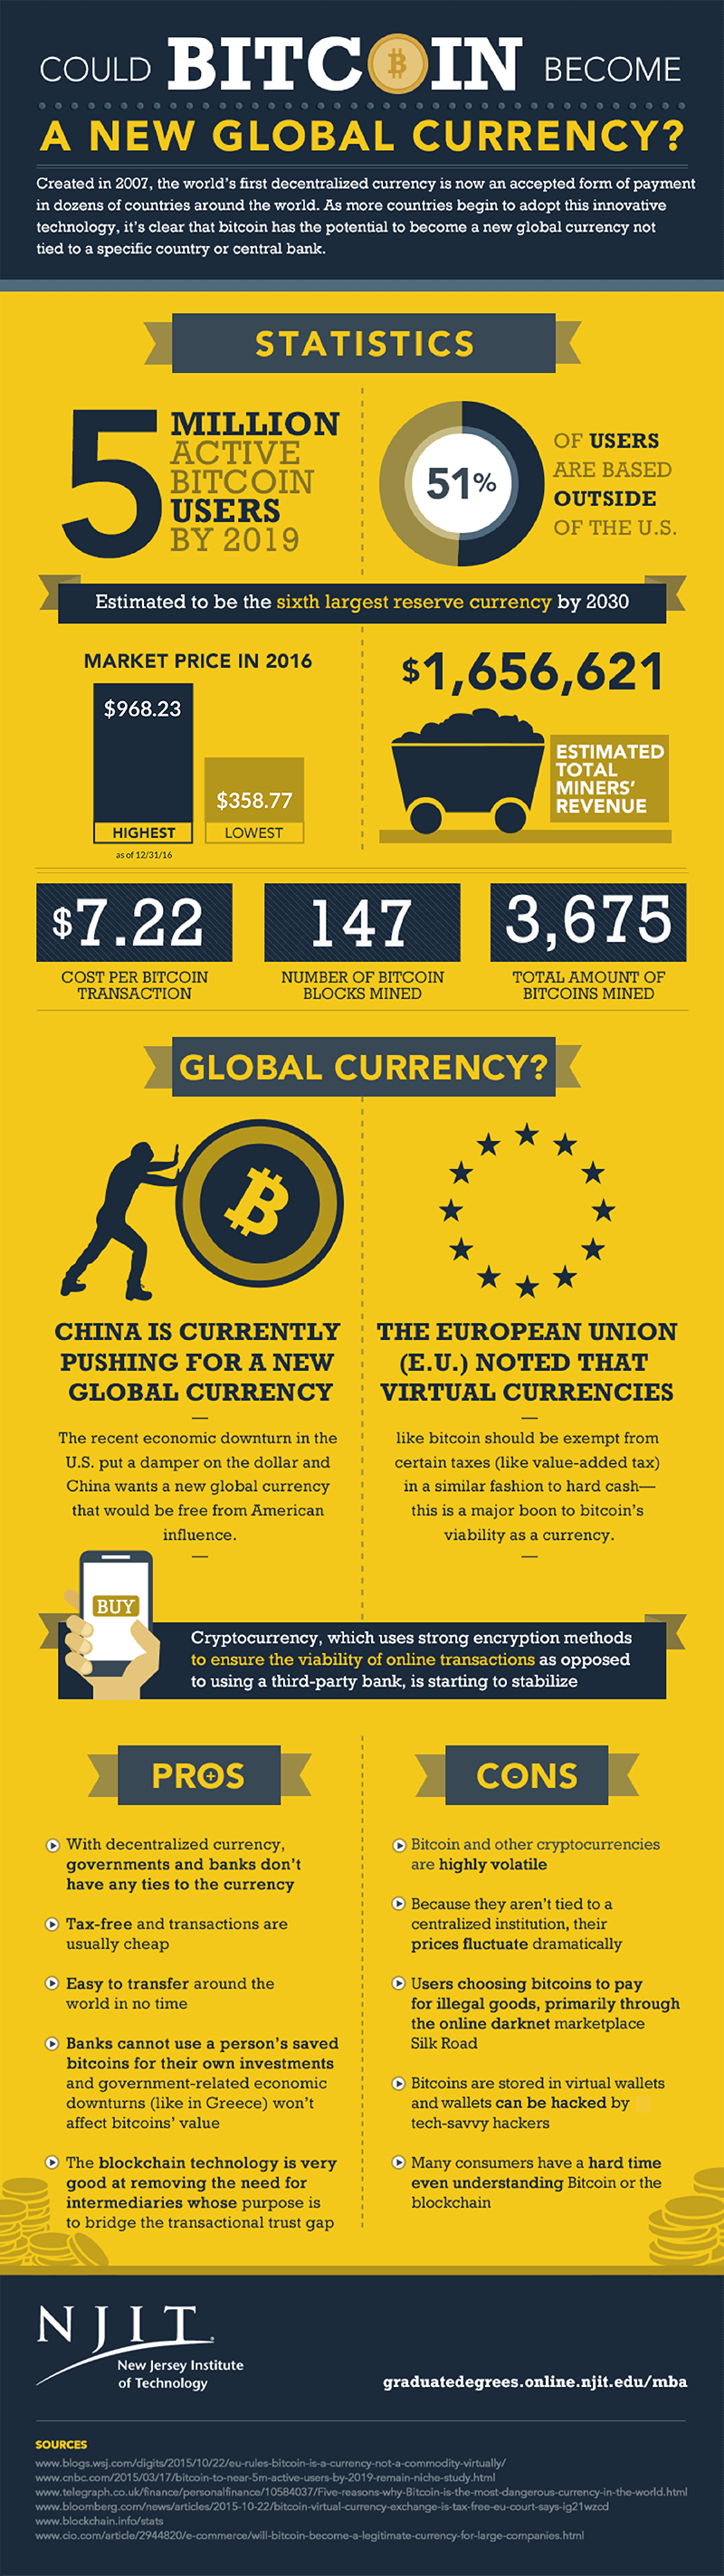 Could Bitcoin Become a New Global Currency?